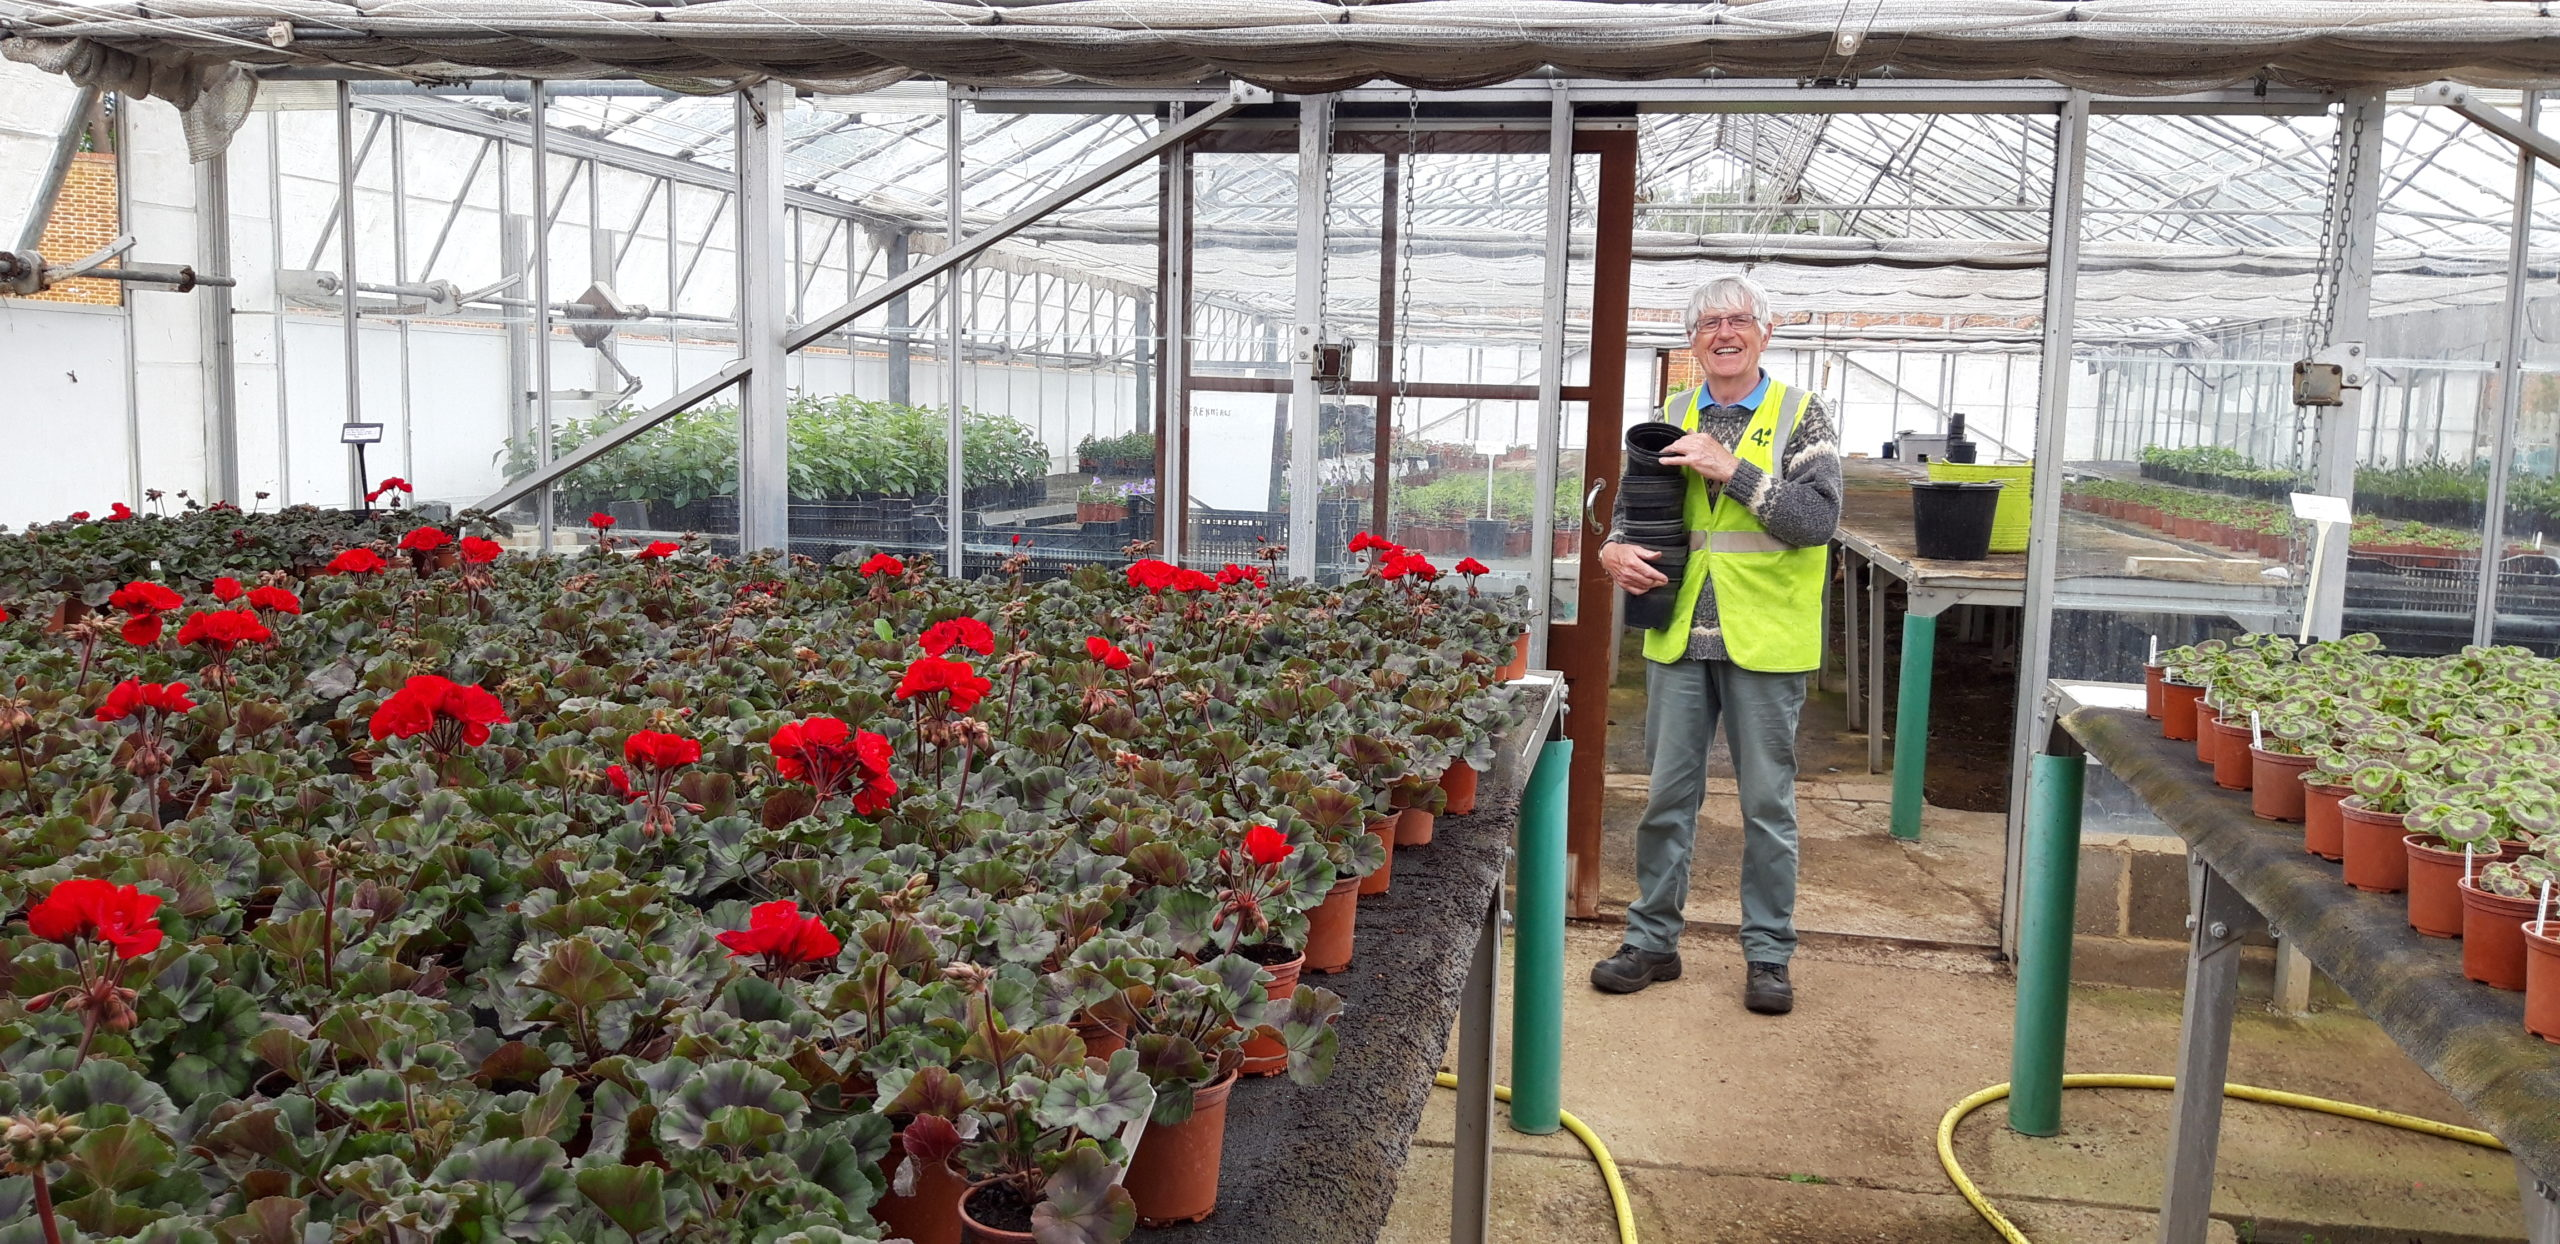 An ActivLives volunteer stands in the green house at Chantry Walled Garden